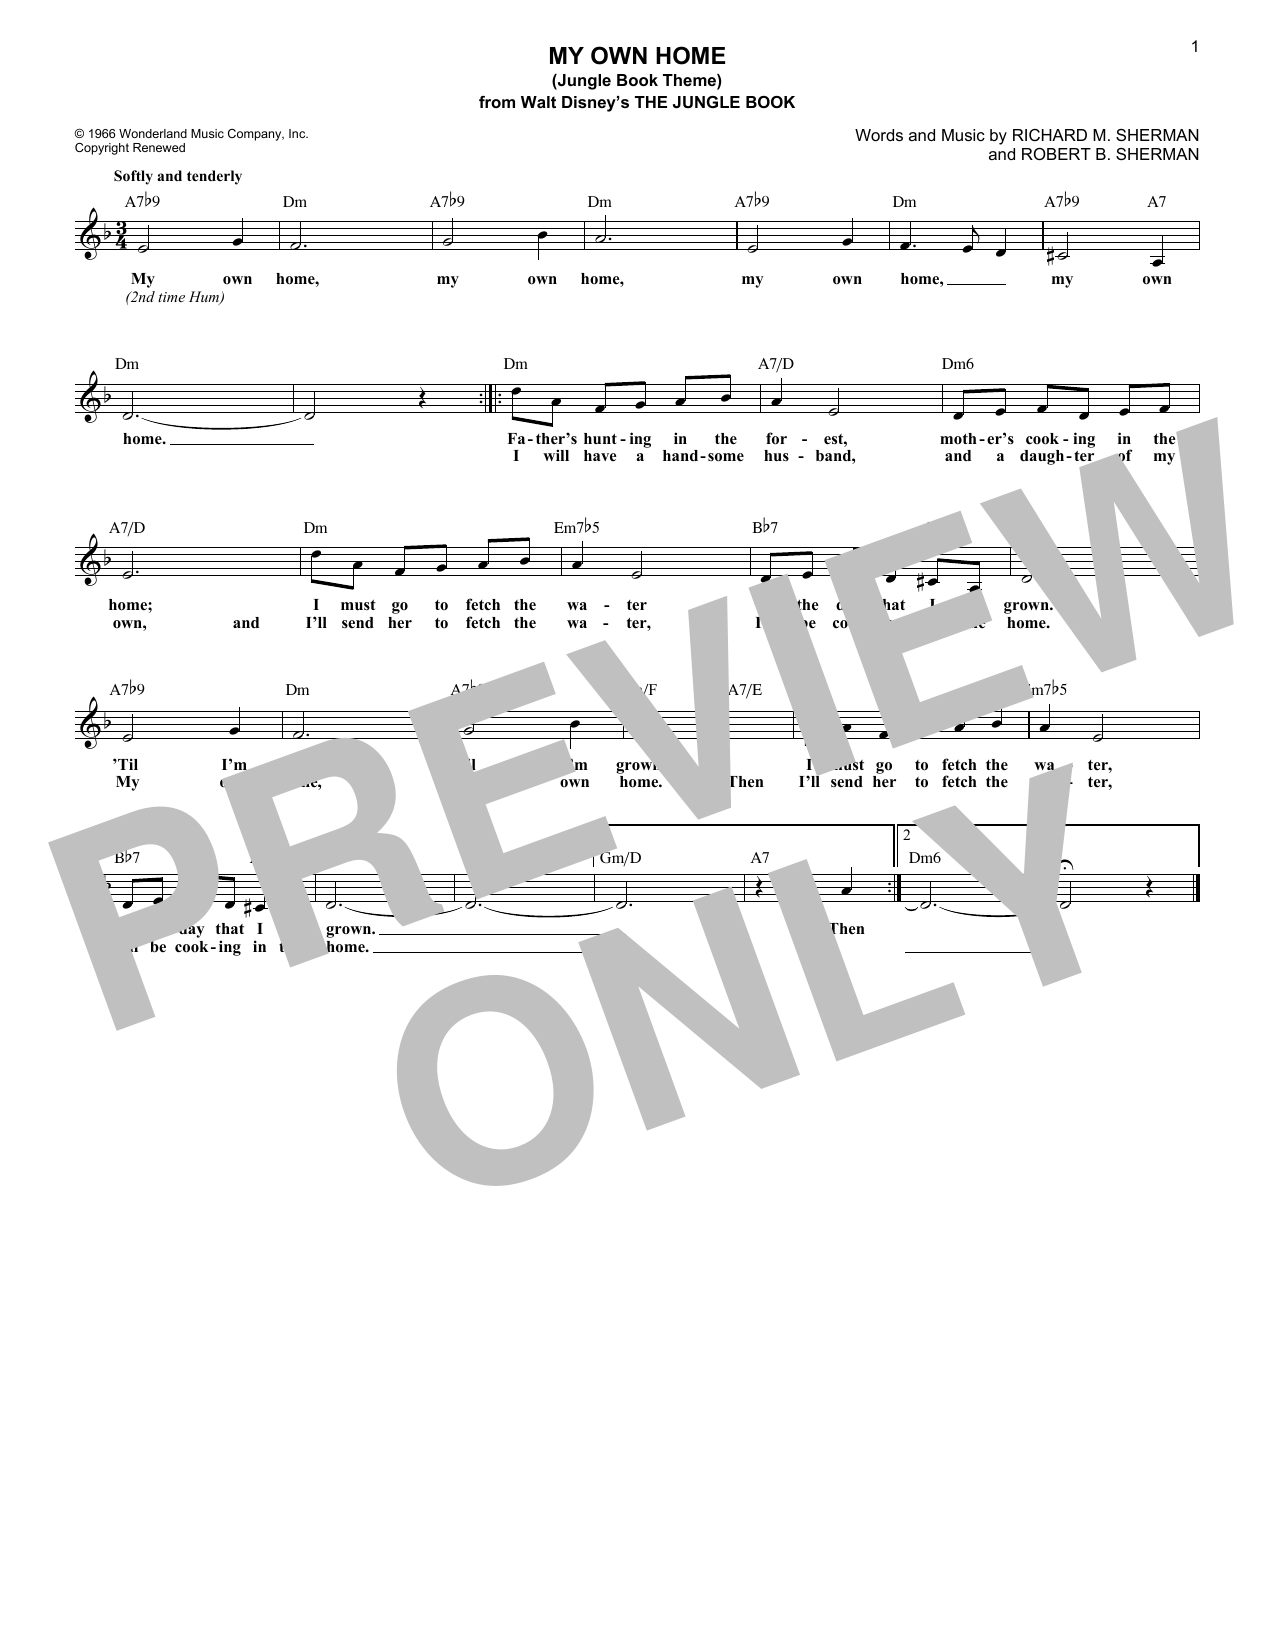 Robert B. Sherman My Own Home (Jungle Book Theme) sheet music notes and chords. Download Printable PDF.